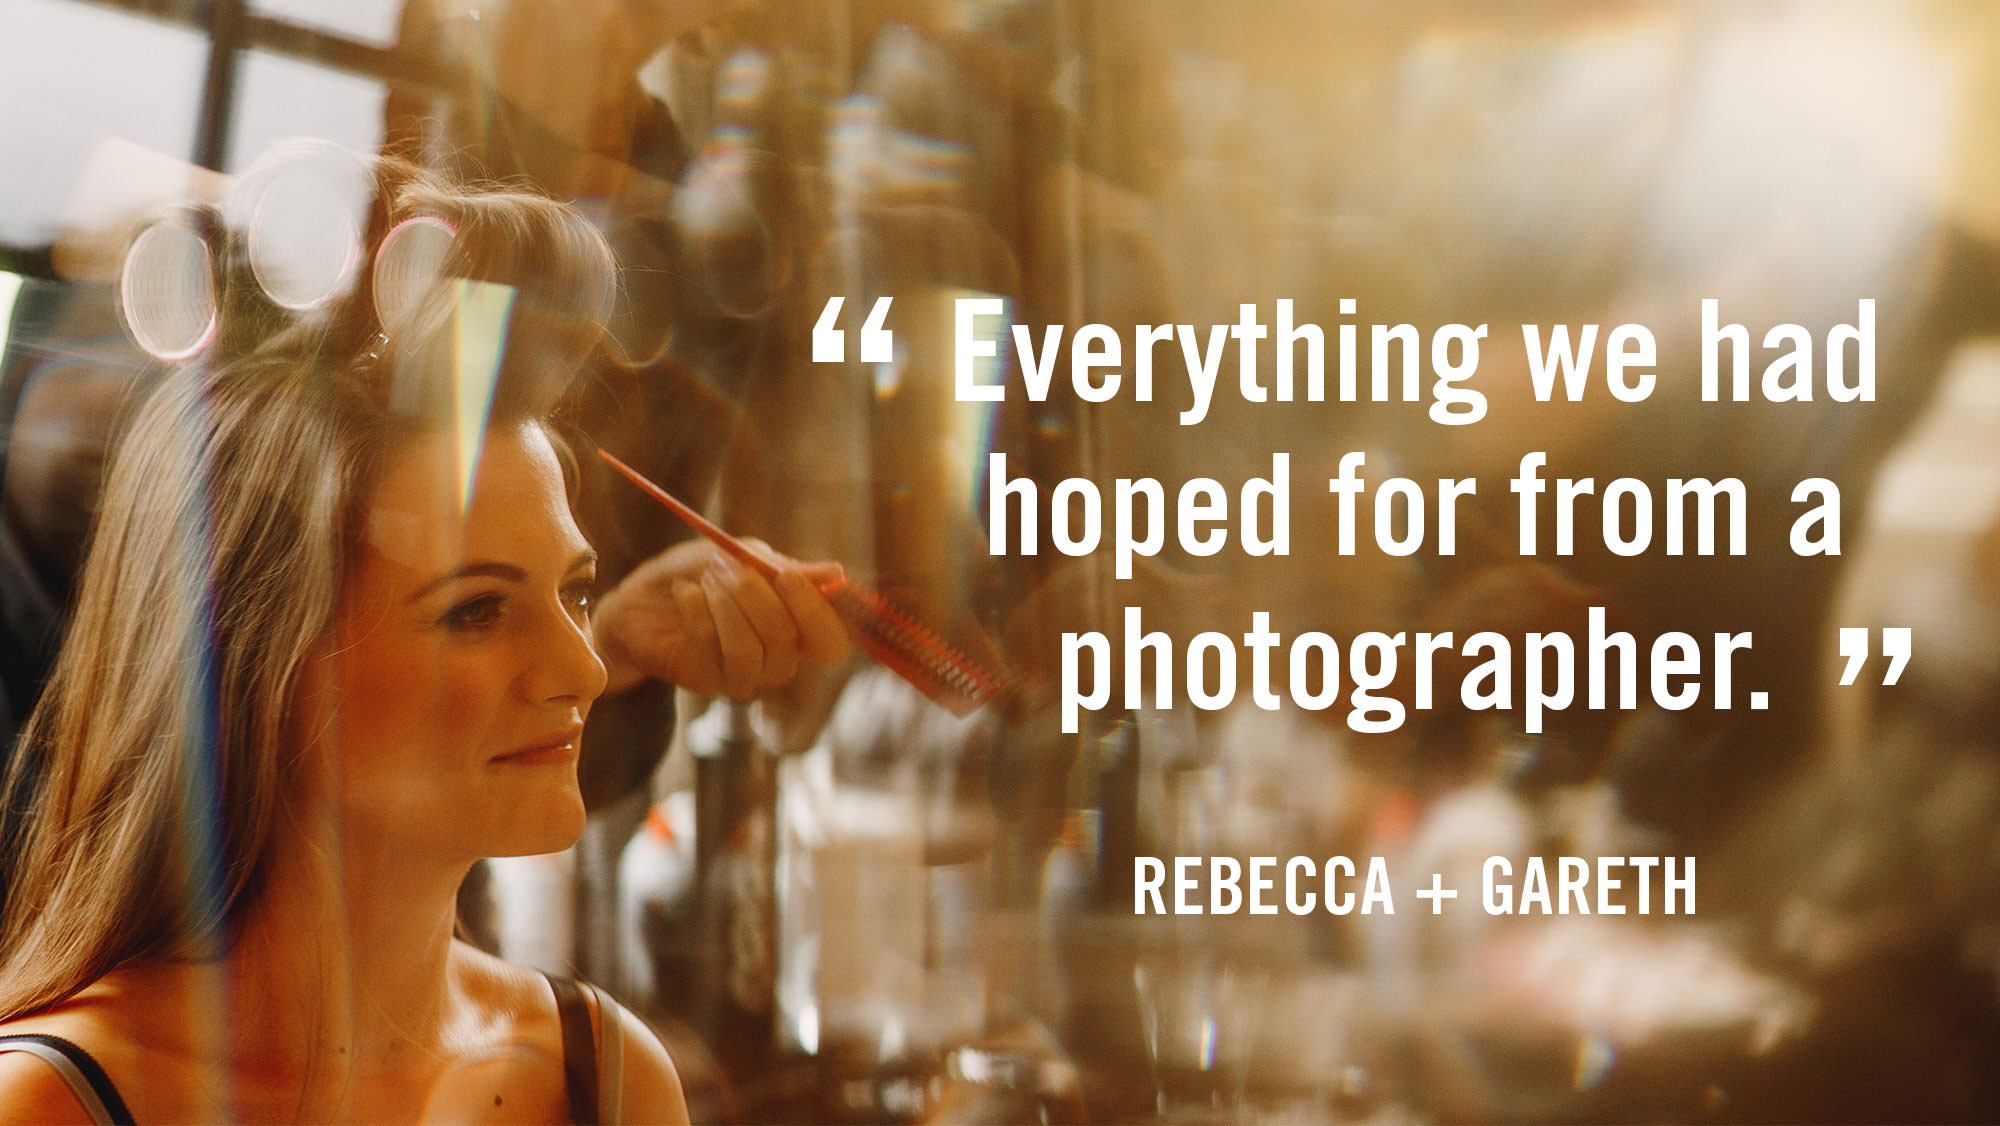 Wedding photography reviews 10